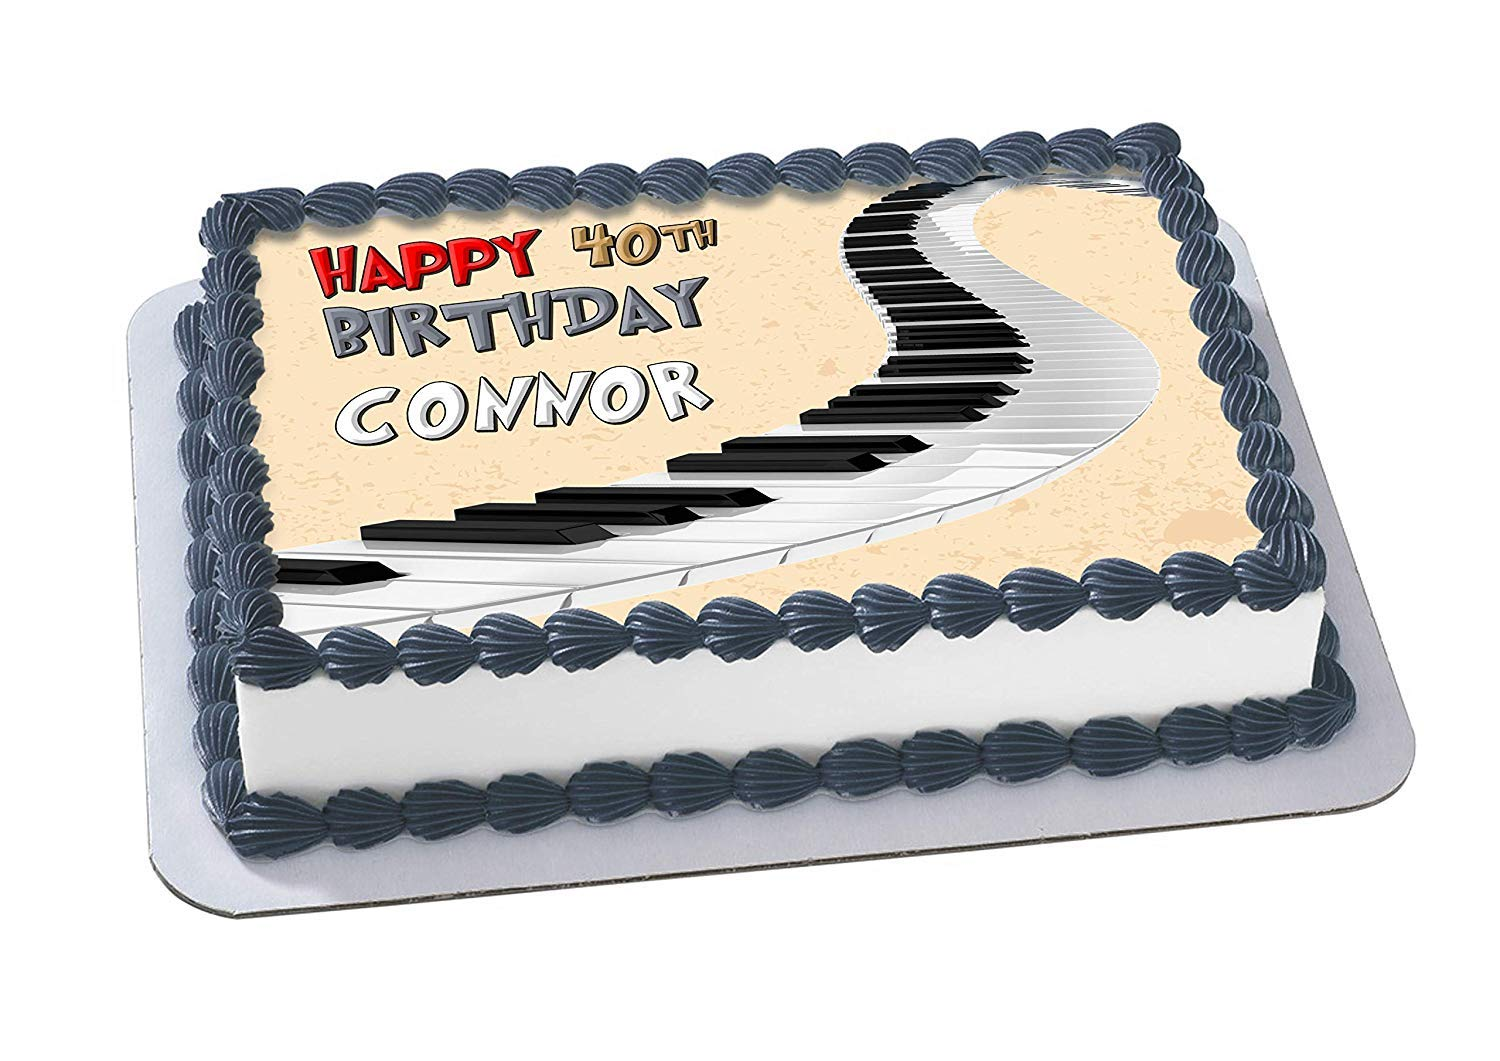 EdibleInkArt Piano Keyboard Edible Cake Topper Personalized Birthday 1 4 Sheet Decoration Custom Party On Wafer Rice Paper Amazon